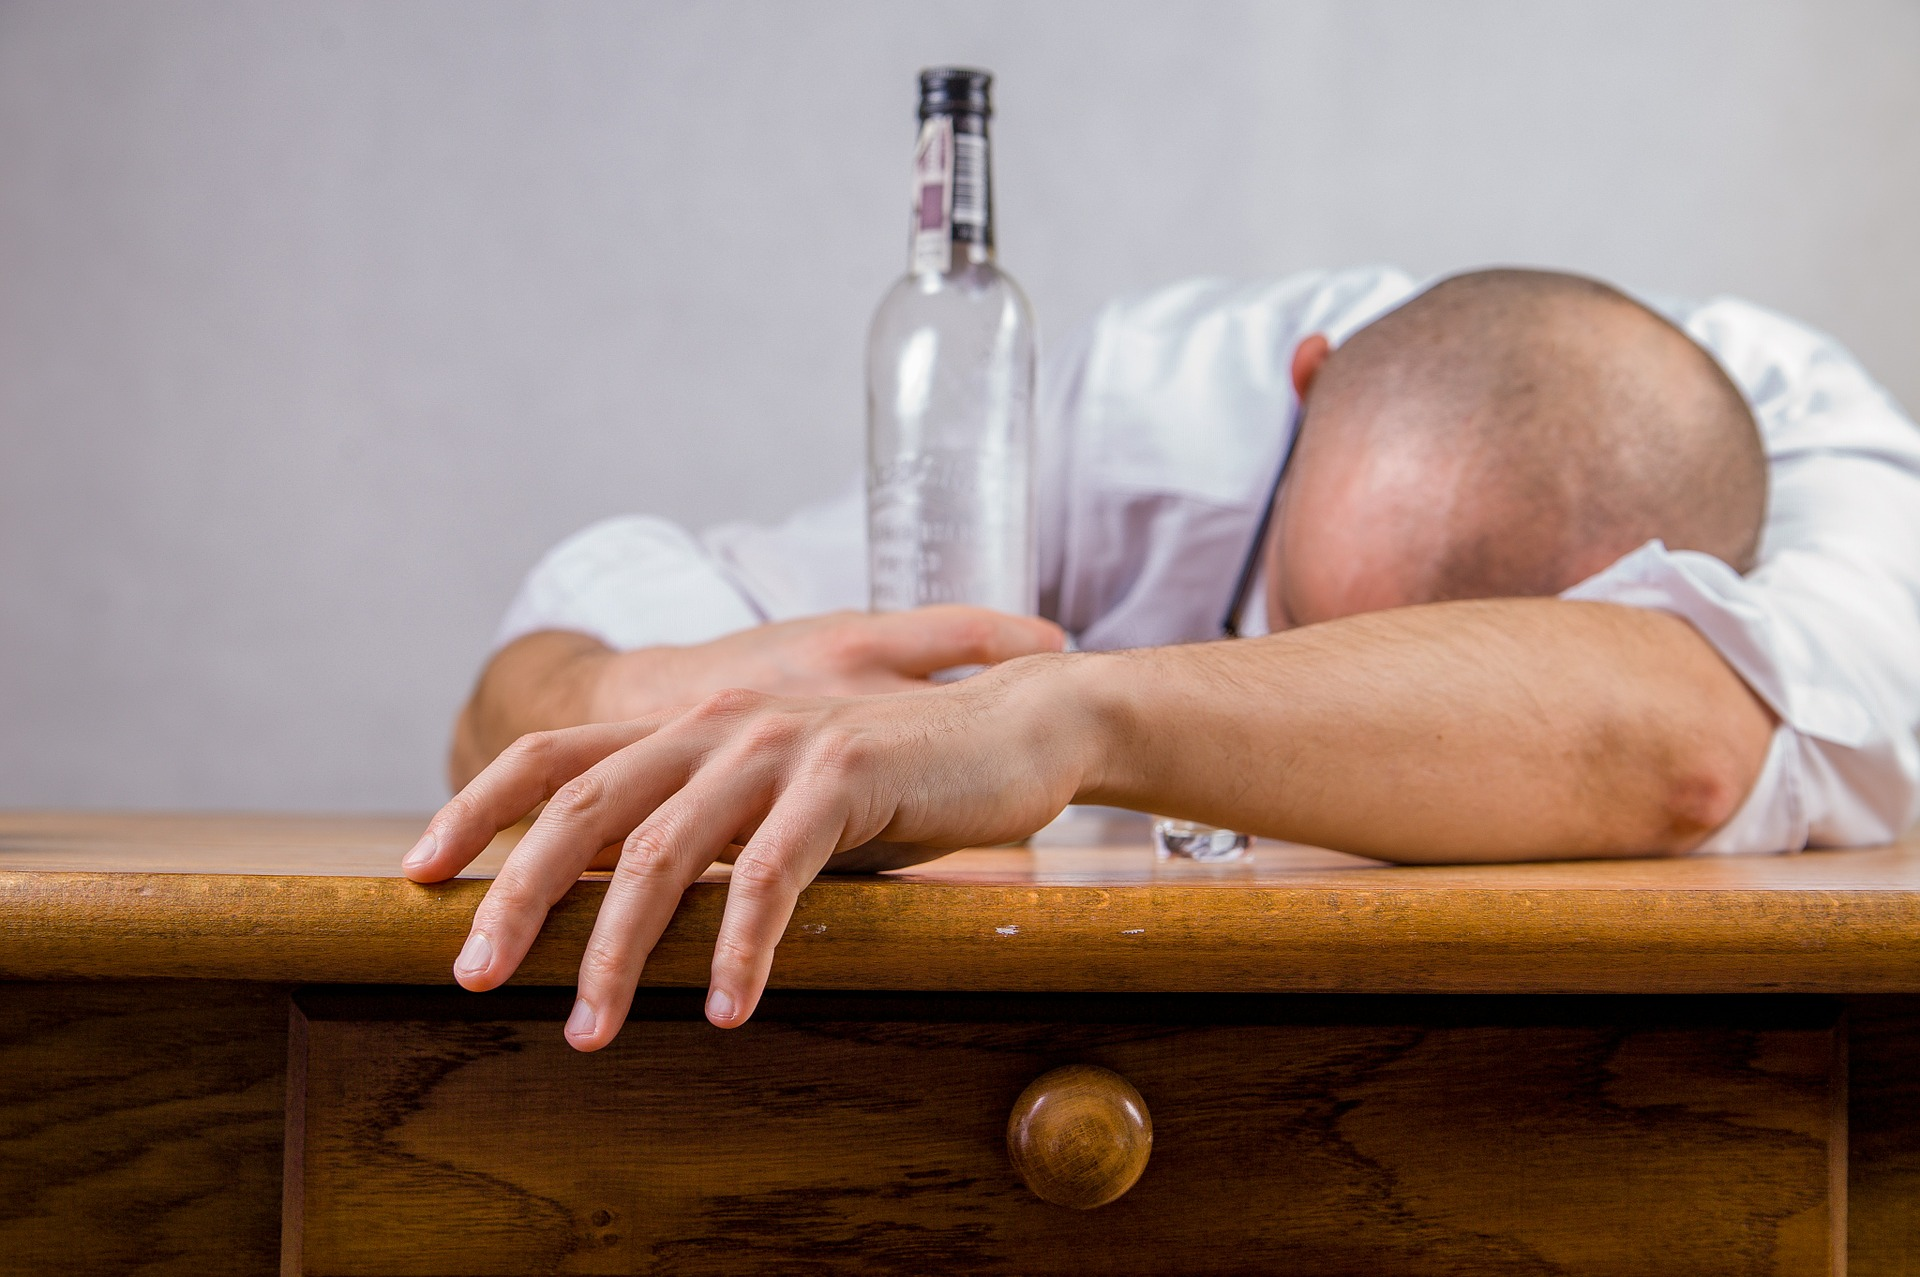 Man with empty bottle